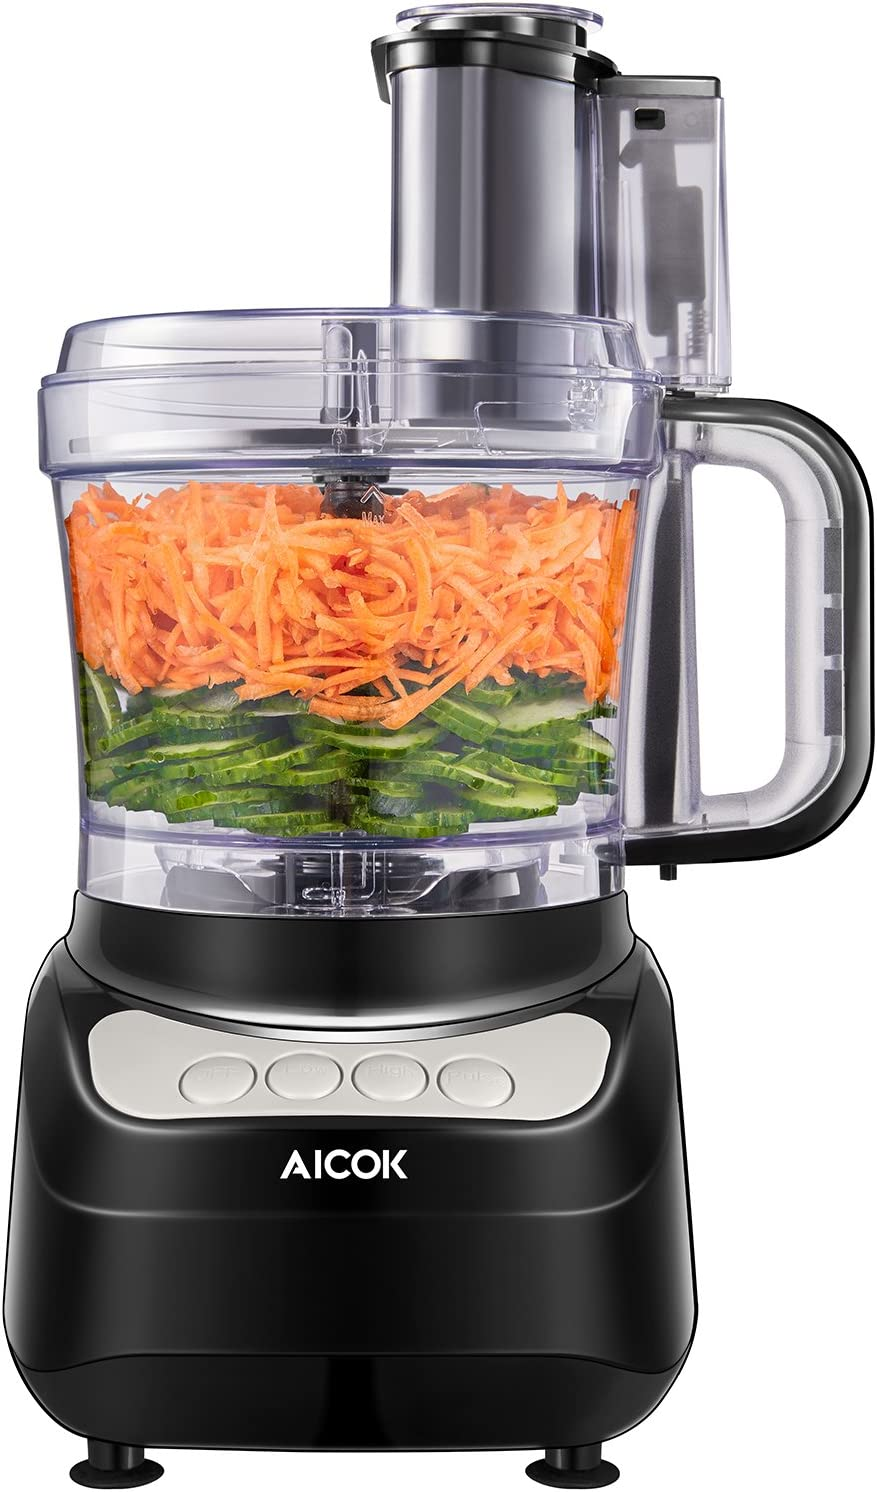 AICOK Food Processor, Compact Food Processor, Multifunctional 12 Cup Electric Food Chopper, 4 Speed Controls Food Shredder, Chopper with Blade, Shredder & Grater, Safety Interlocking Design